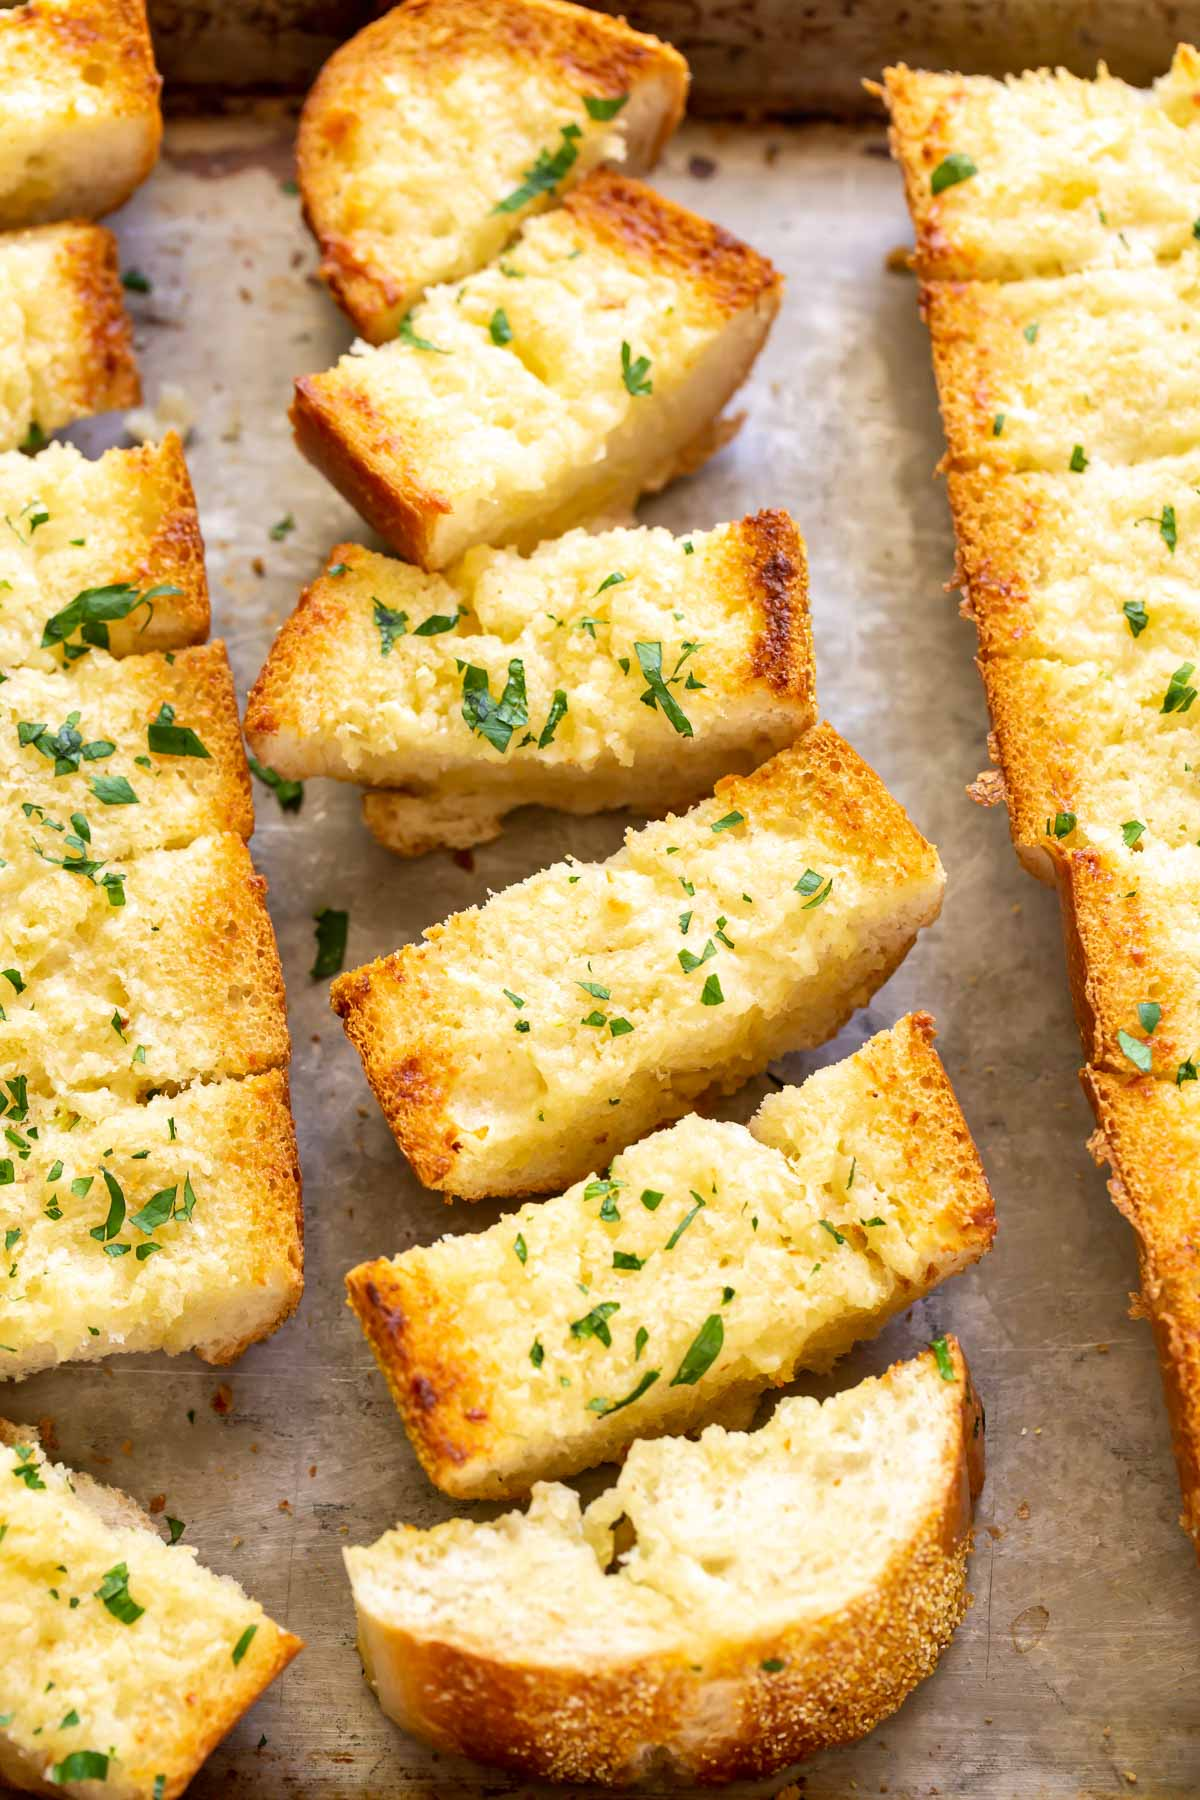 slices of oven baked garlic bread topped with fresh parsley on a baking sheet